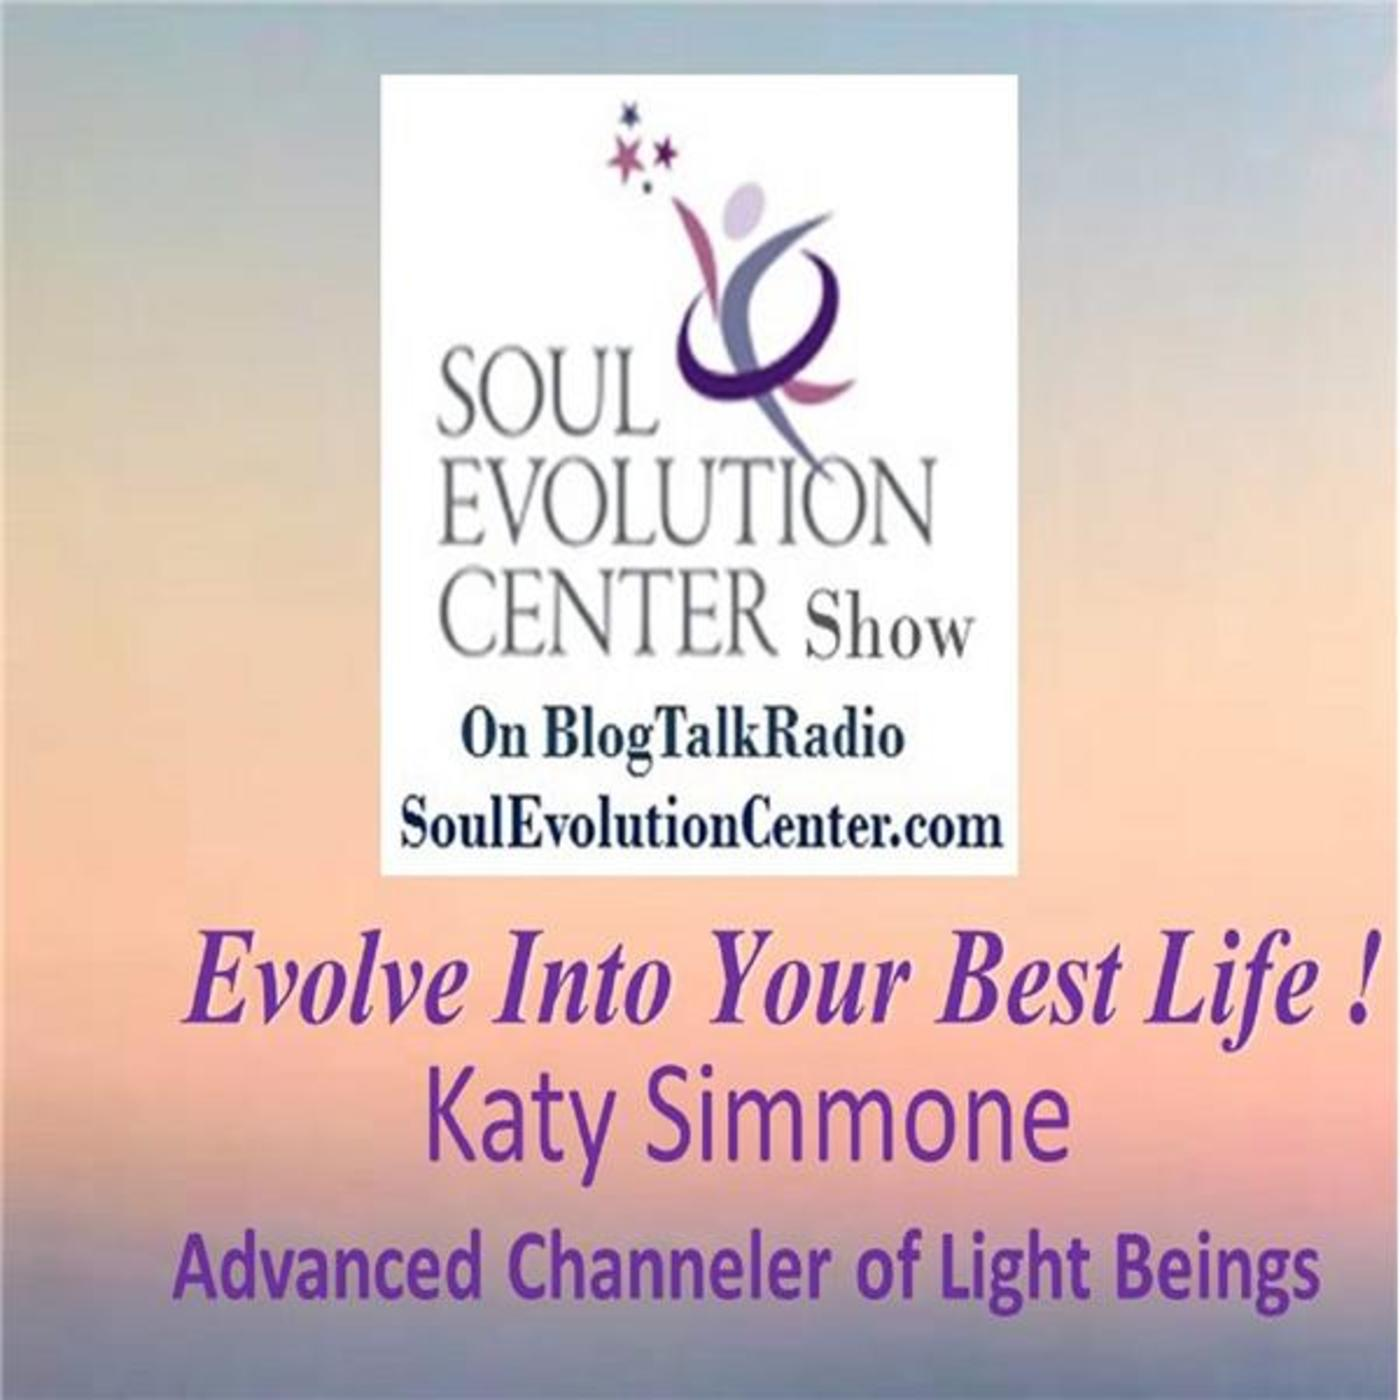 Soul Evolution Center Show